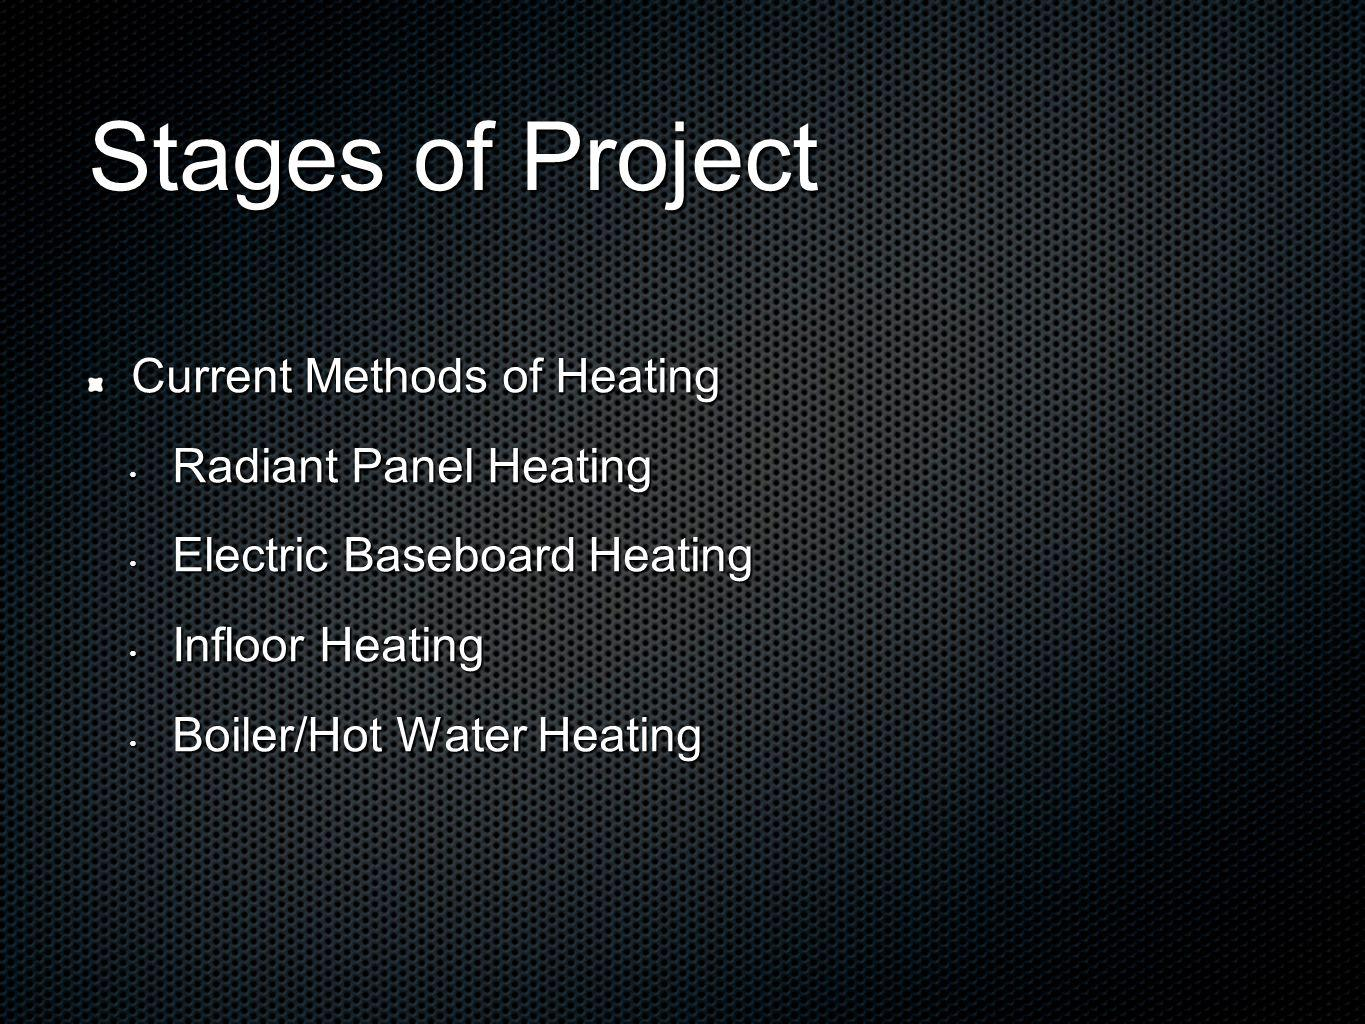 Stages of Project Current Methods of Heating Radiant Panel Heating Radiant Panel Heating Electric Baseboard Heating Electric Baseboard Heating Infloor